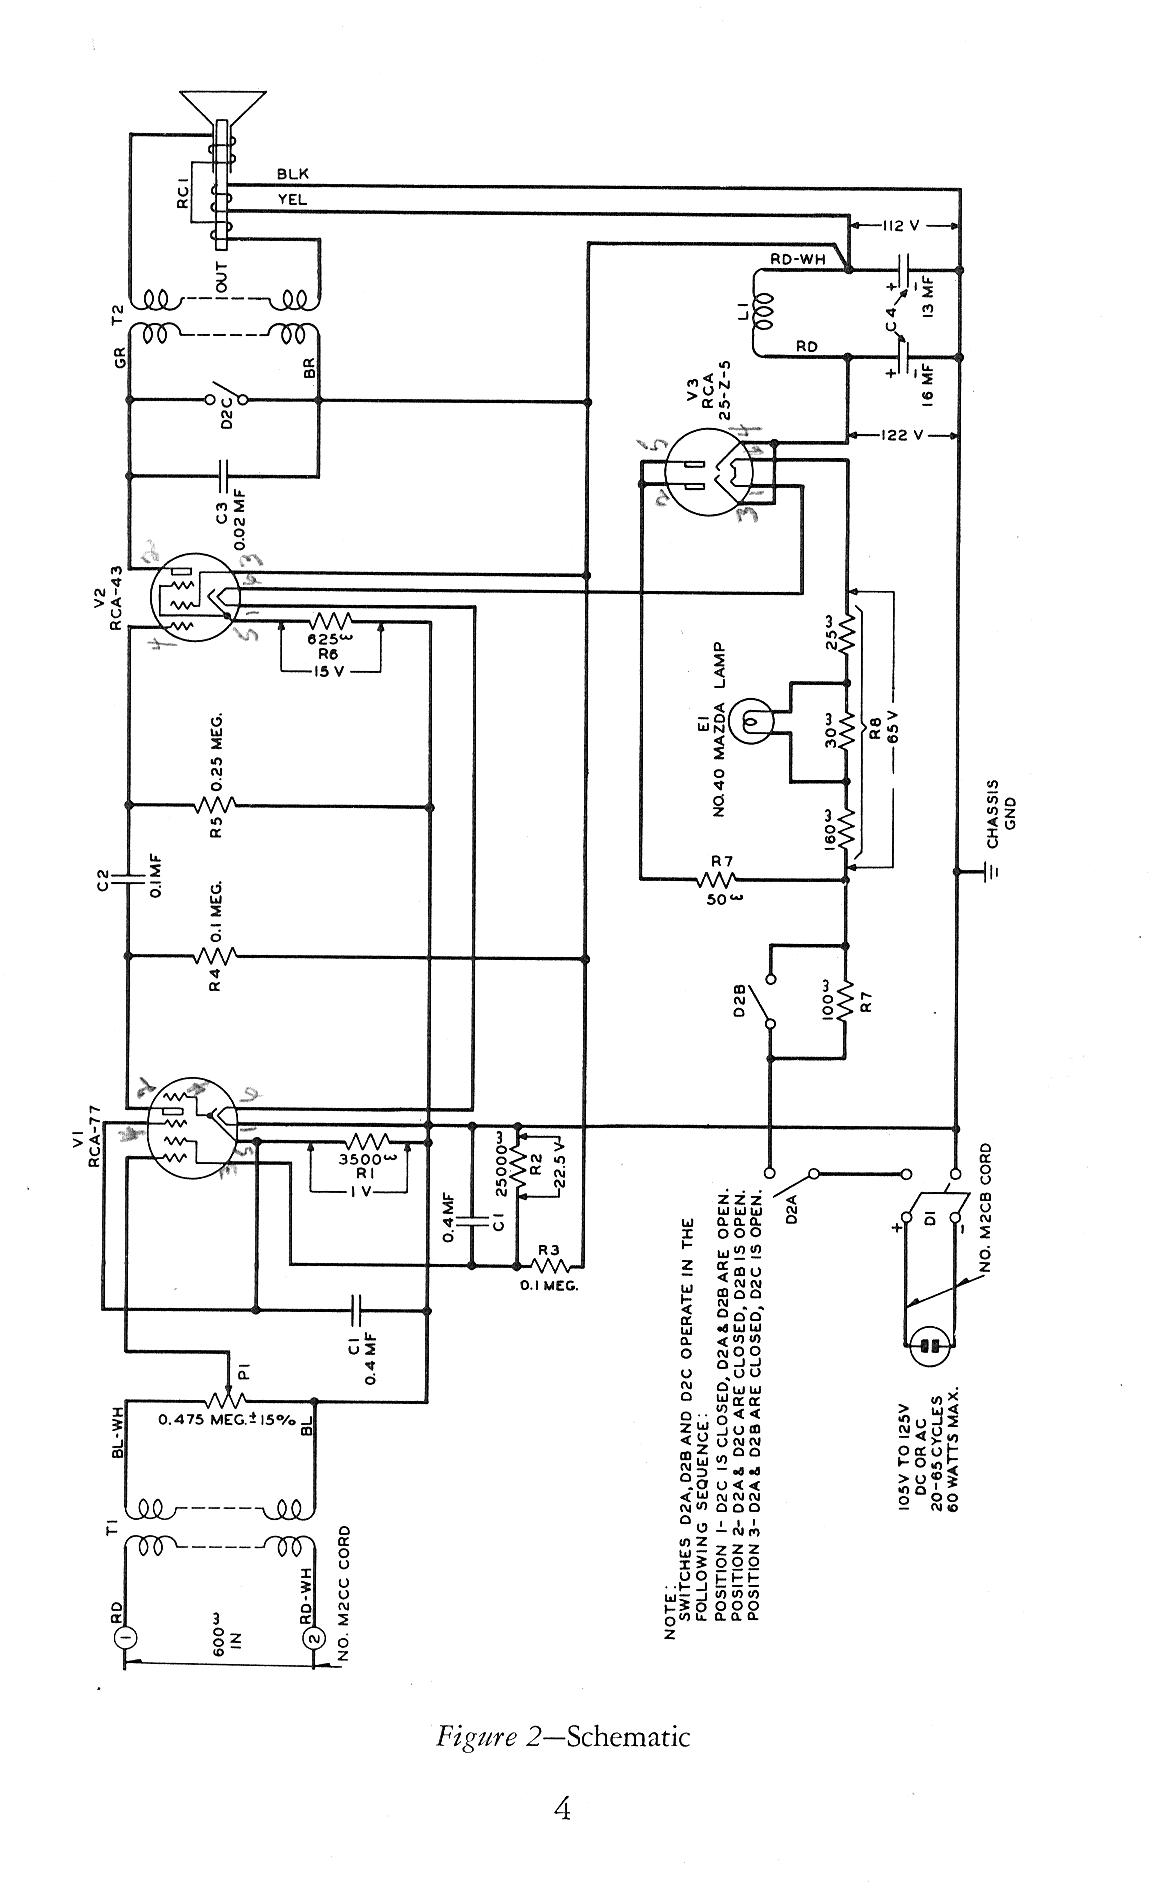 100e_schematic telephone technical references western electric 554 wiring diagram at gsmx.co